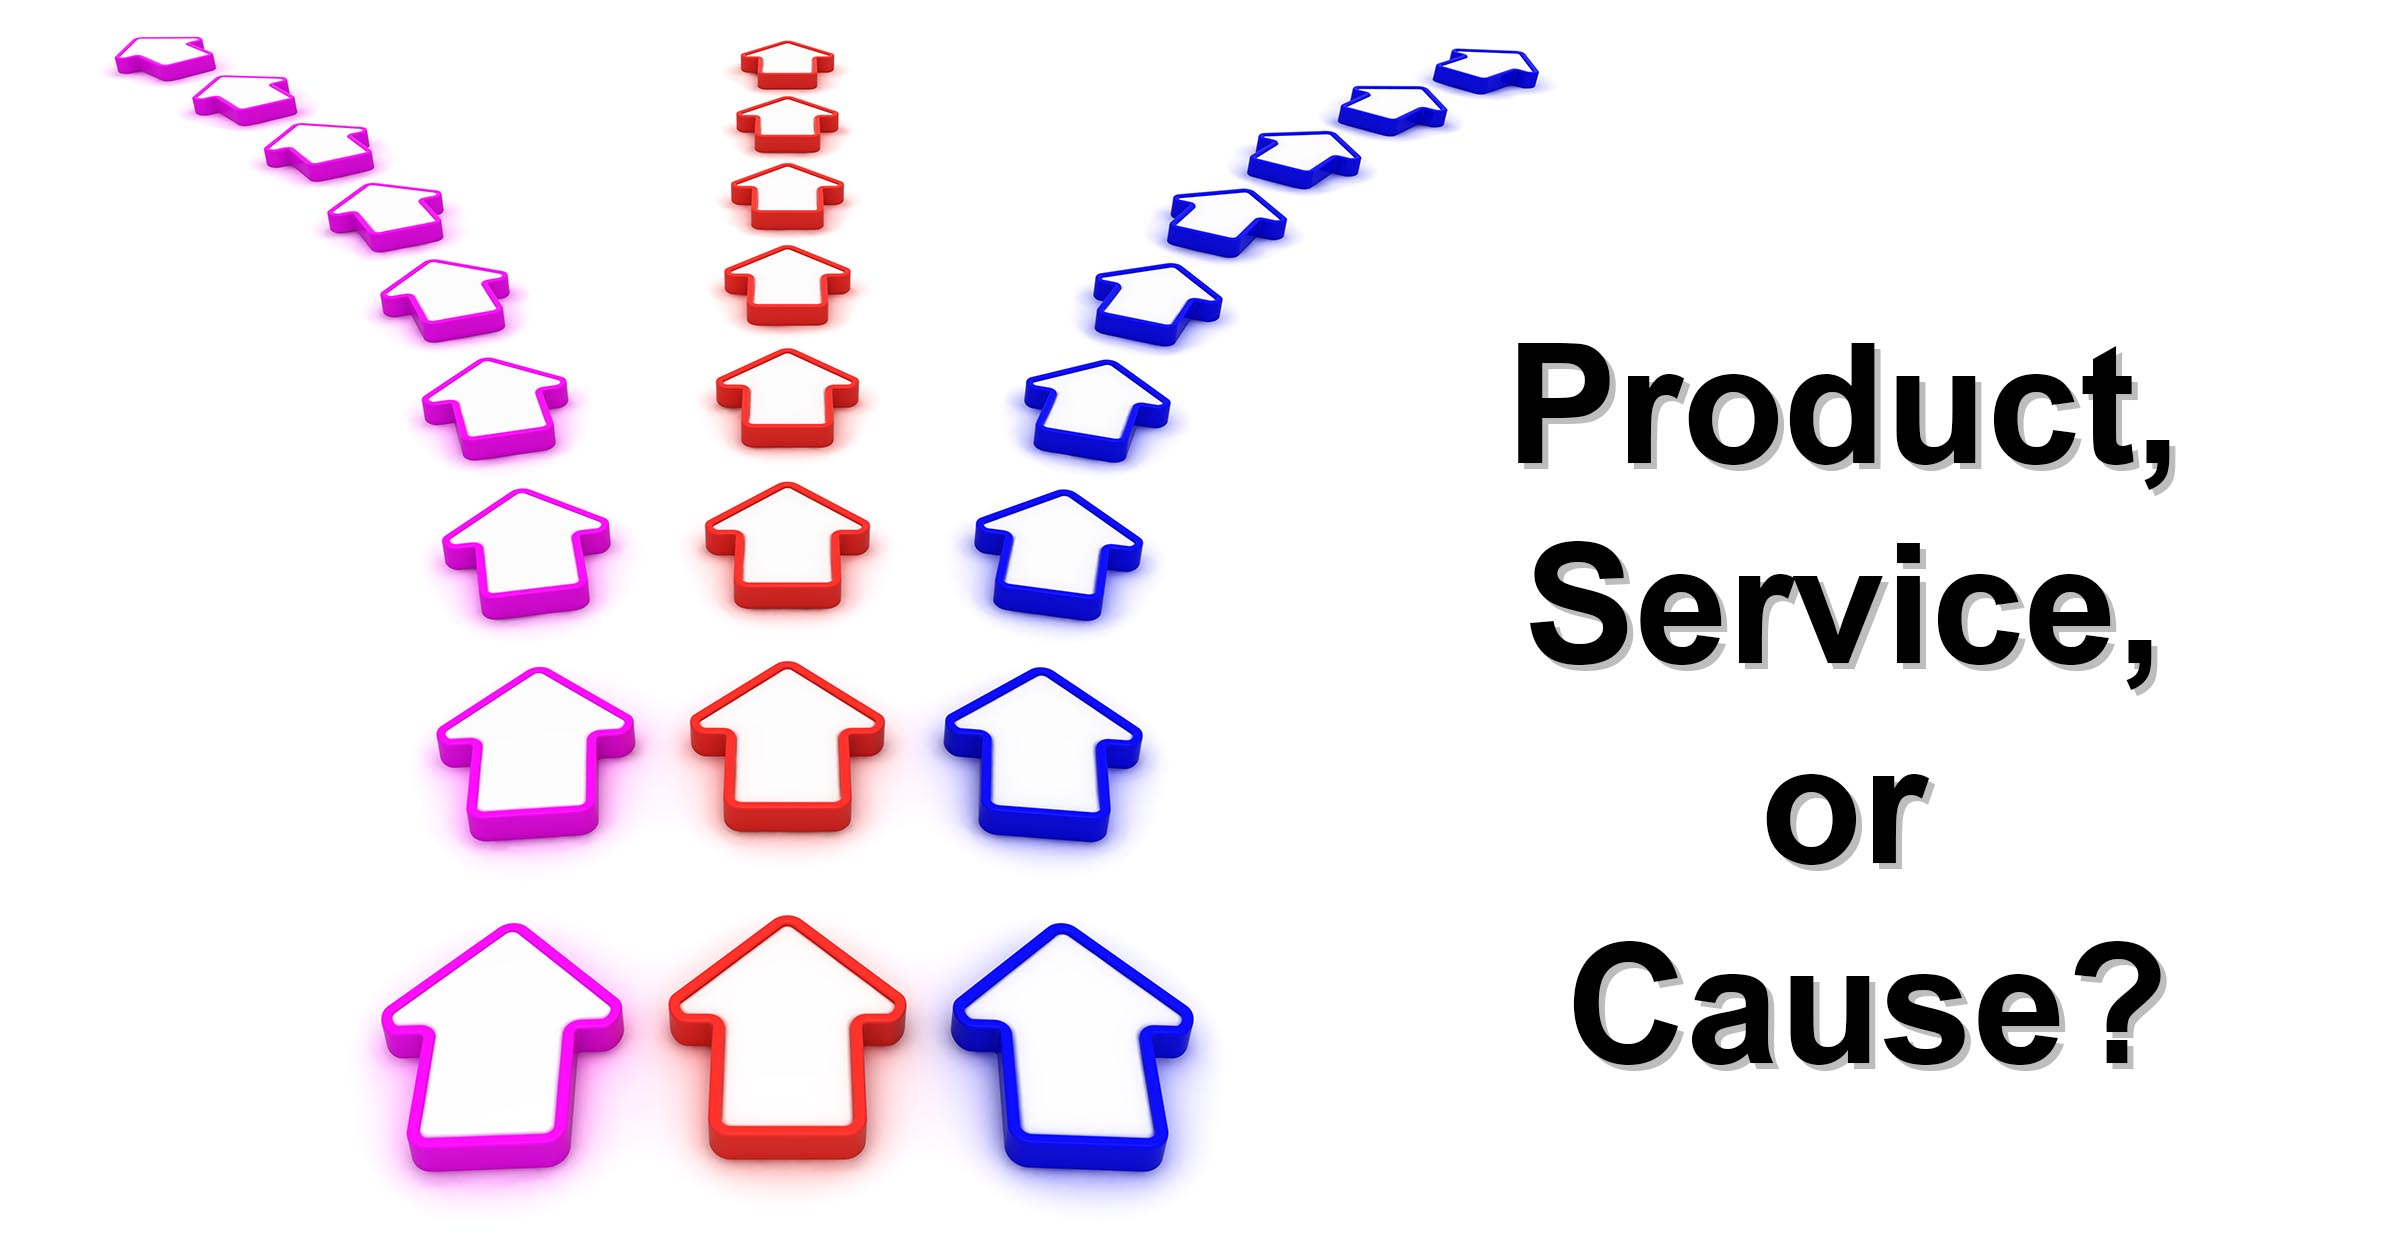 Product, Service, or Cause?